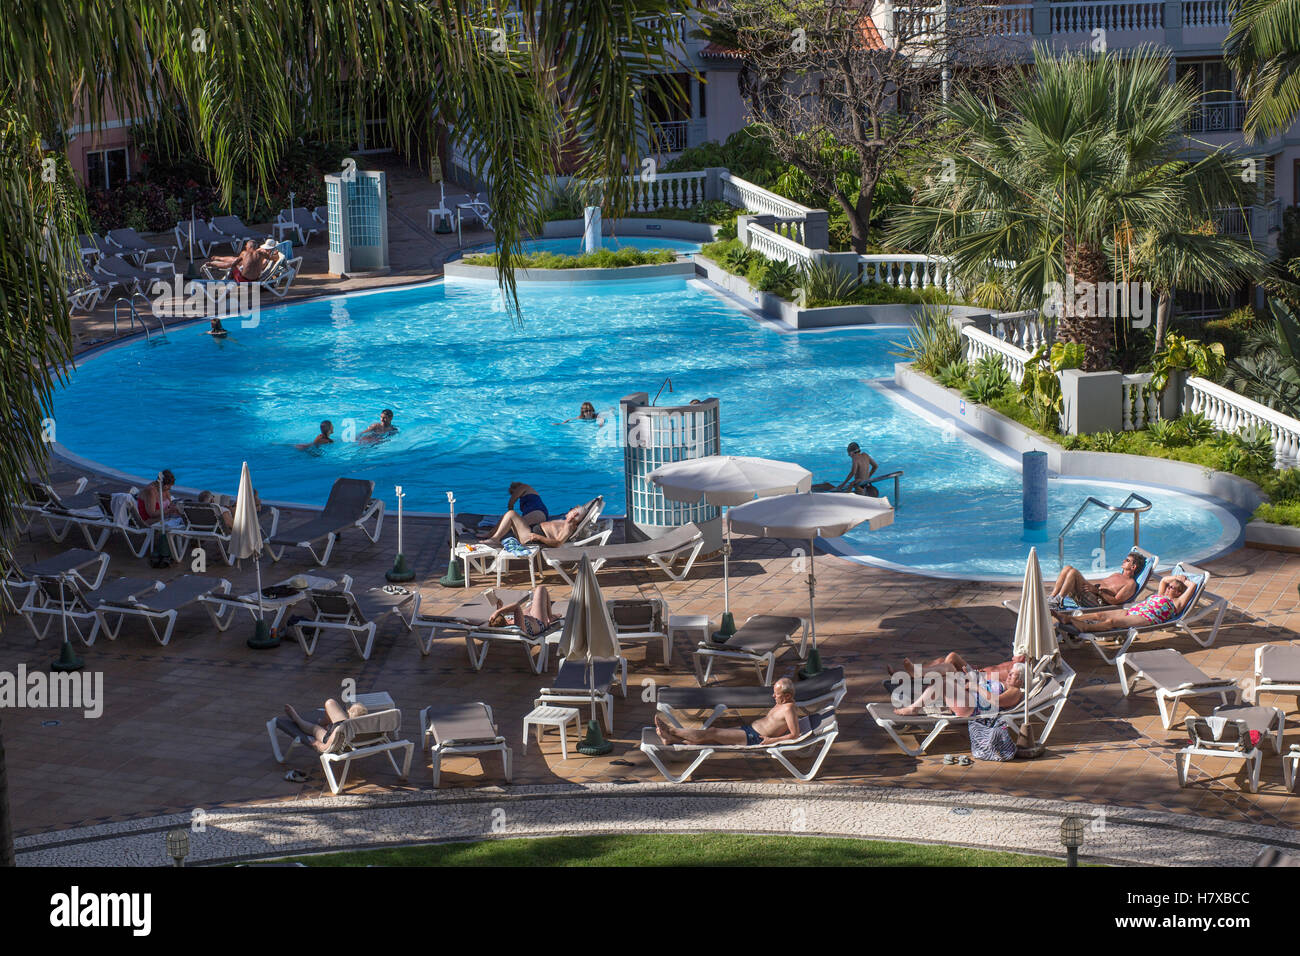 Swimming Pool and apartments at Pestana Village in Funchal, Madeira - Stock Image